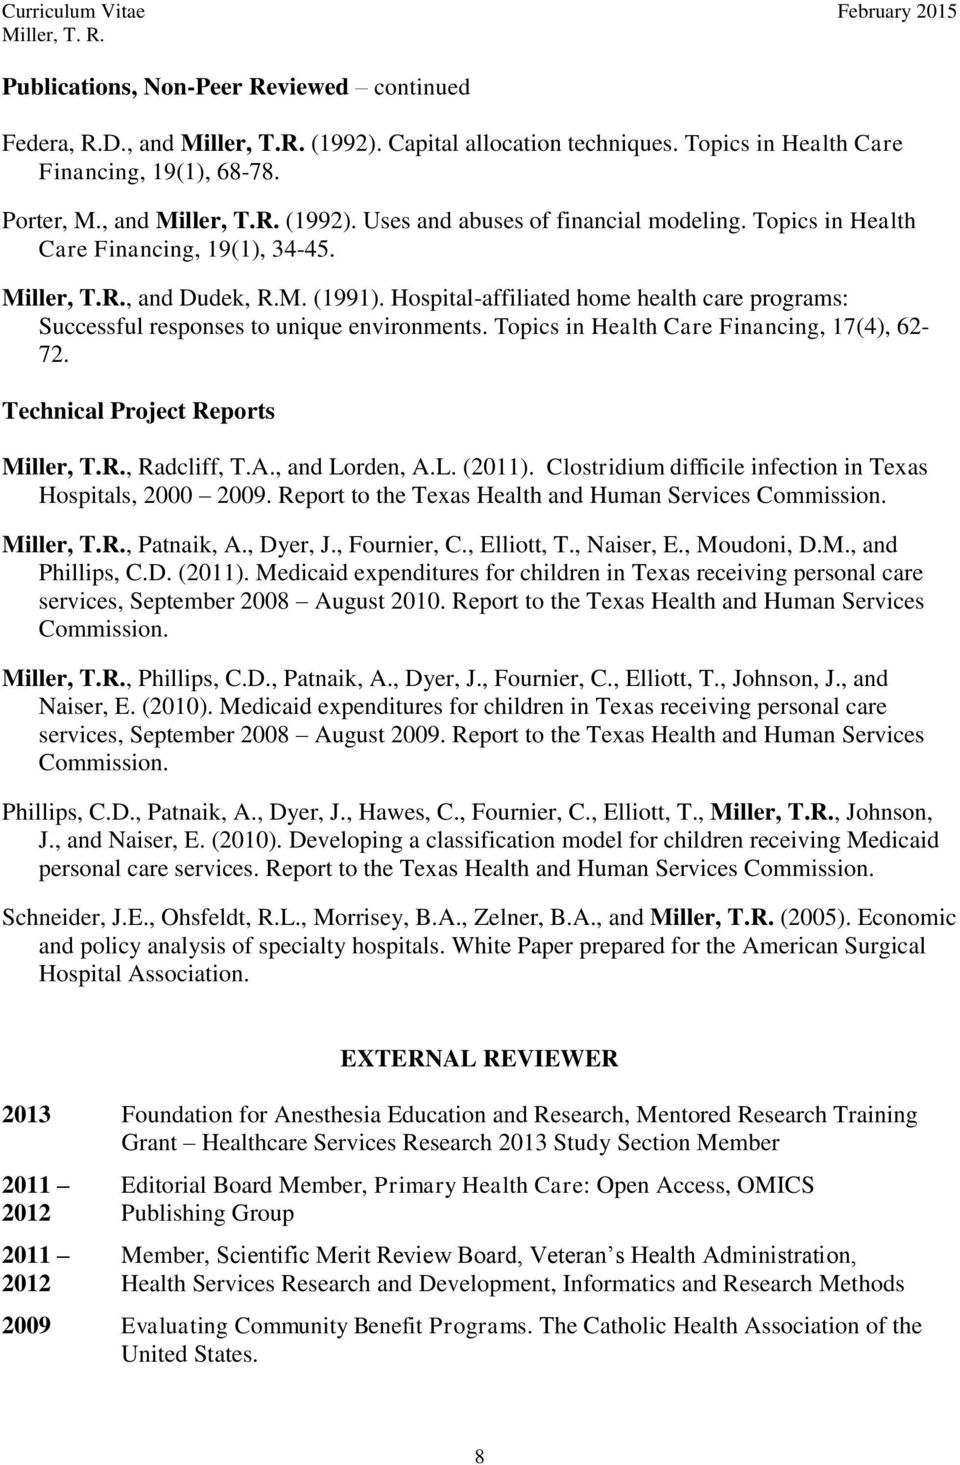 Topics in Health Care Financing, 17(4), 62-72. Technical Project Reports Miller, T.R., Radcliff, T.A., and Lorden, A.L. (2011). Clostridium difficile infection in Texas Hospitals, 2000 2009.